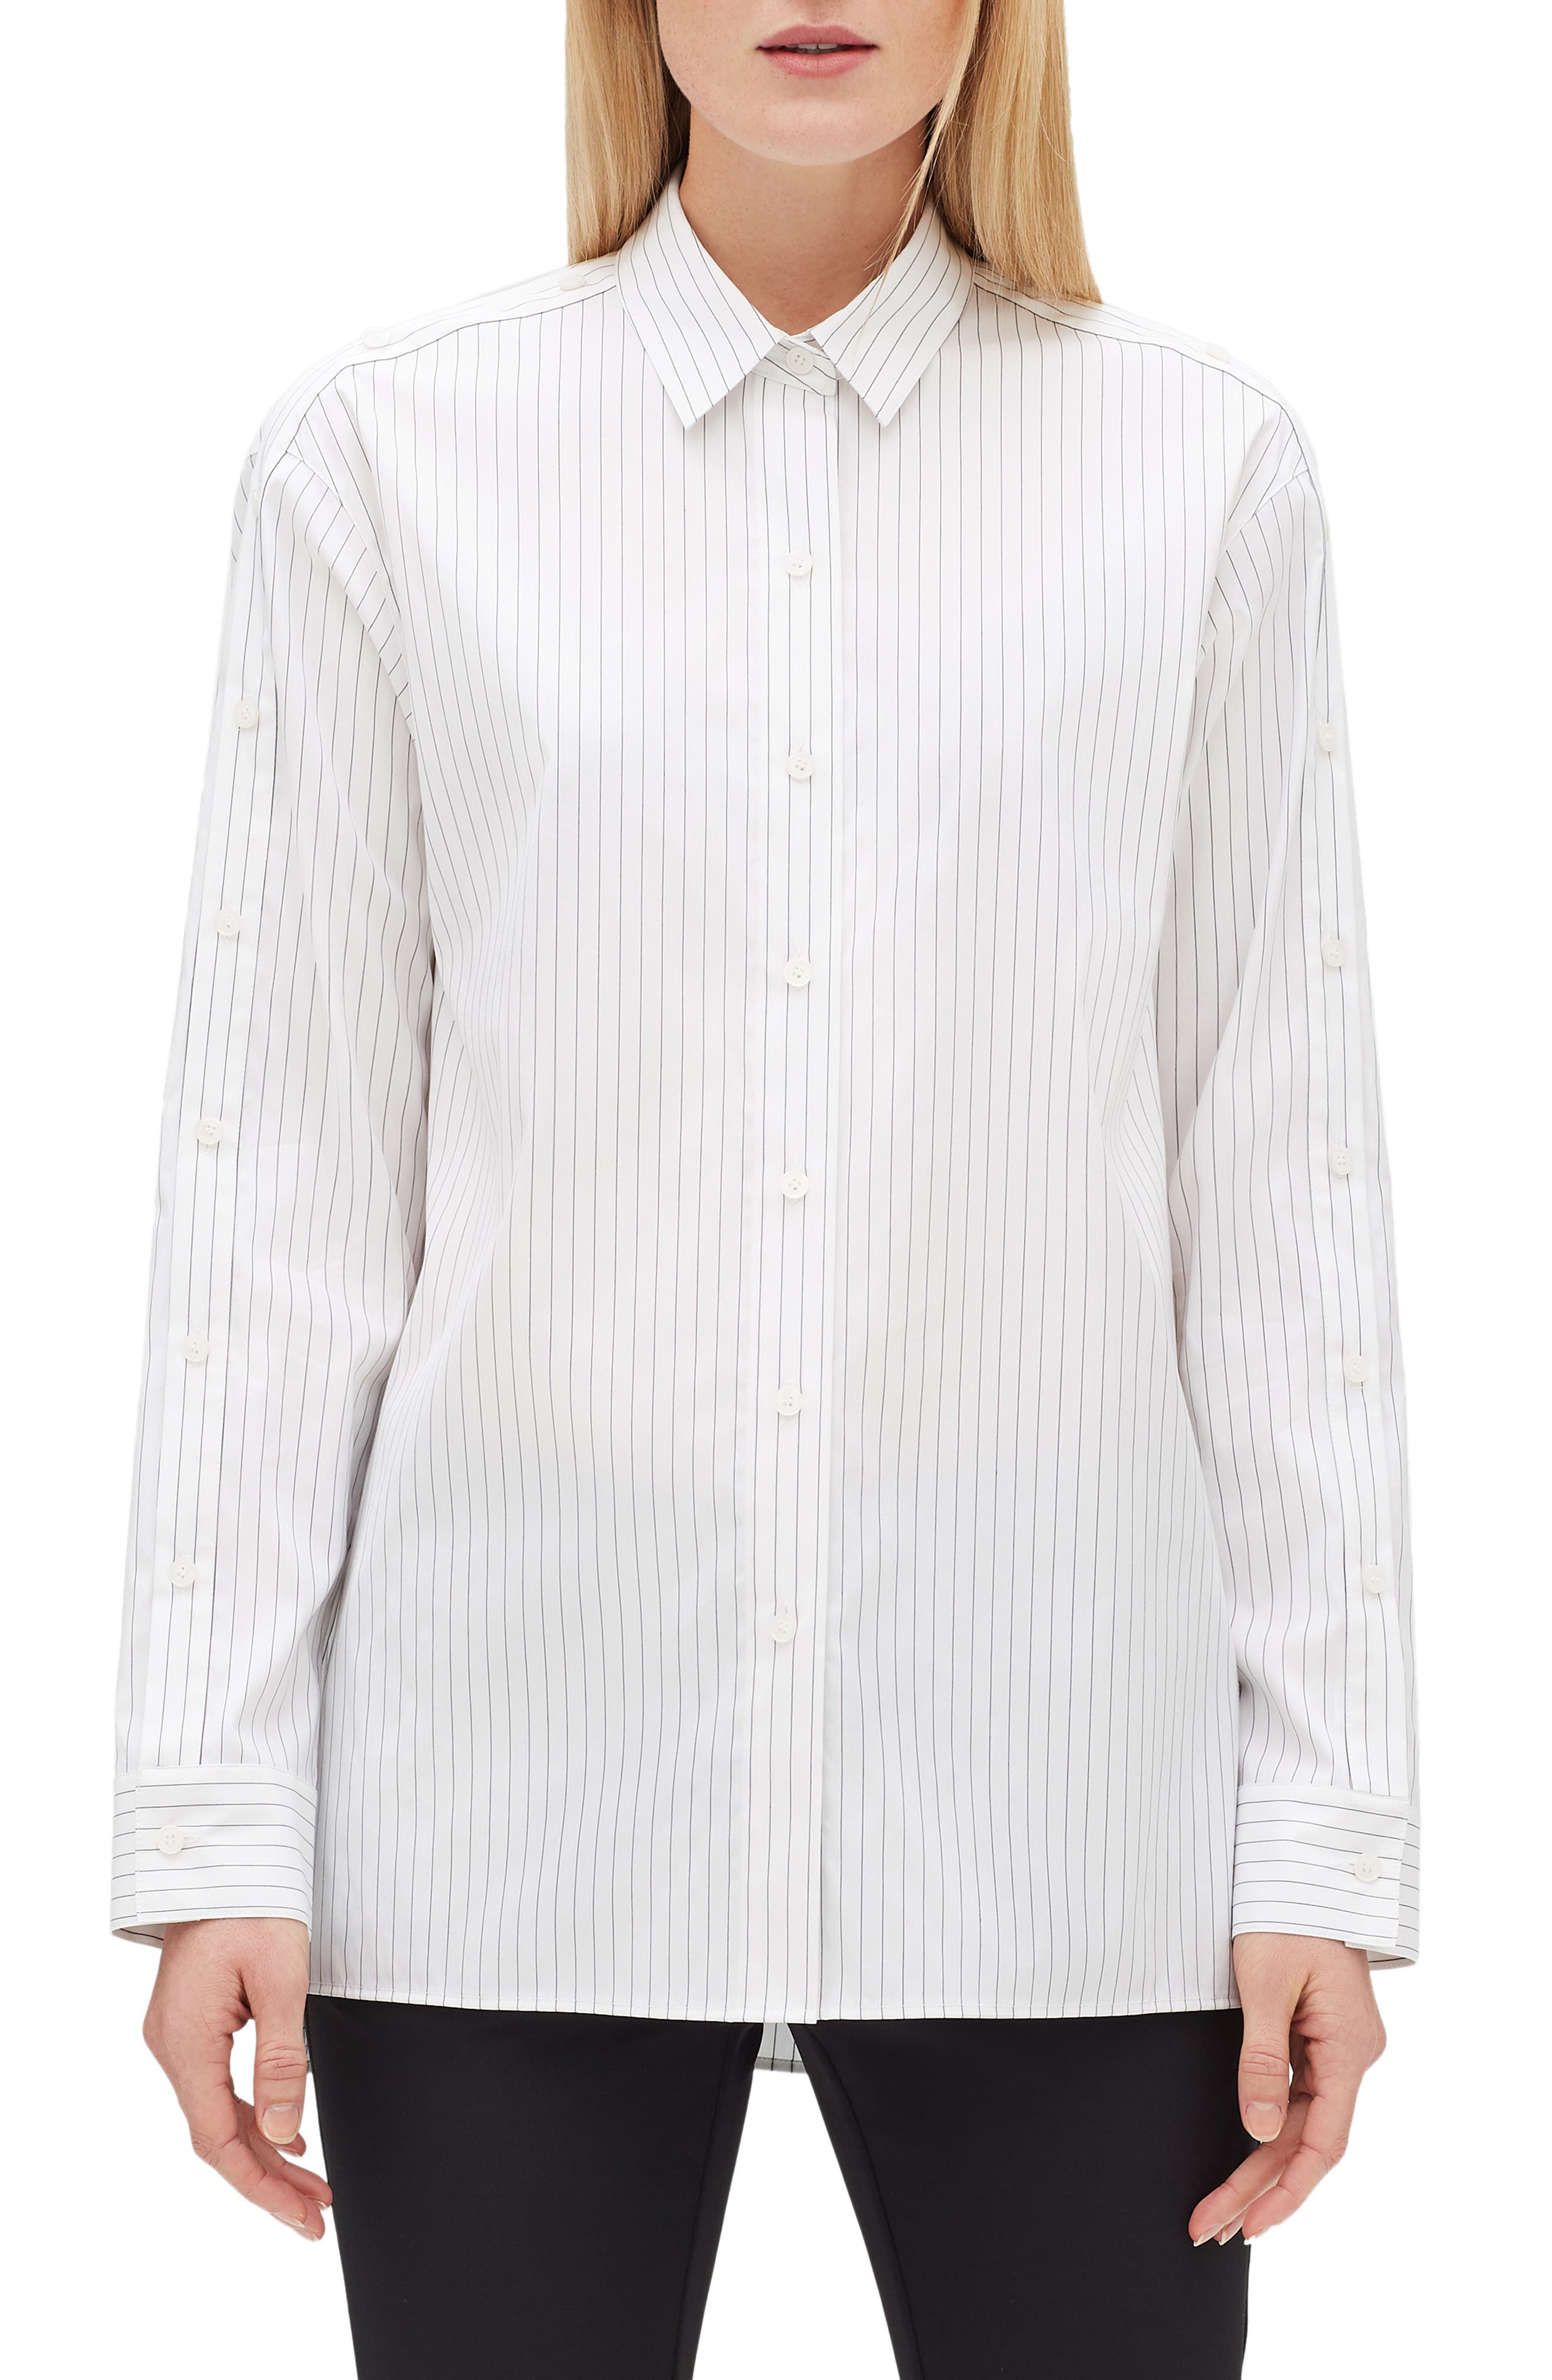 LAFAYETTE 148 NEW YORK Trinity Stanford Stripe Shirt, Main, color, BLACK MULTI